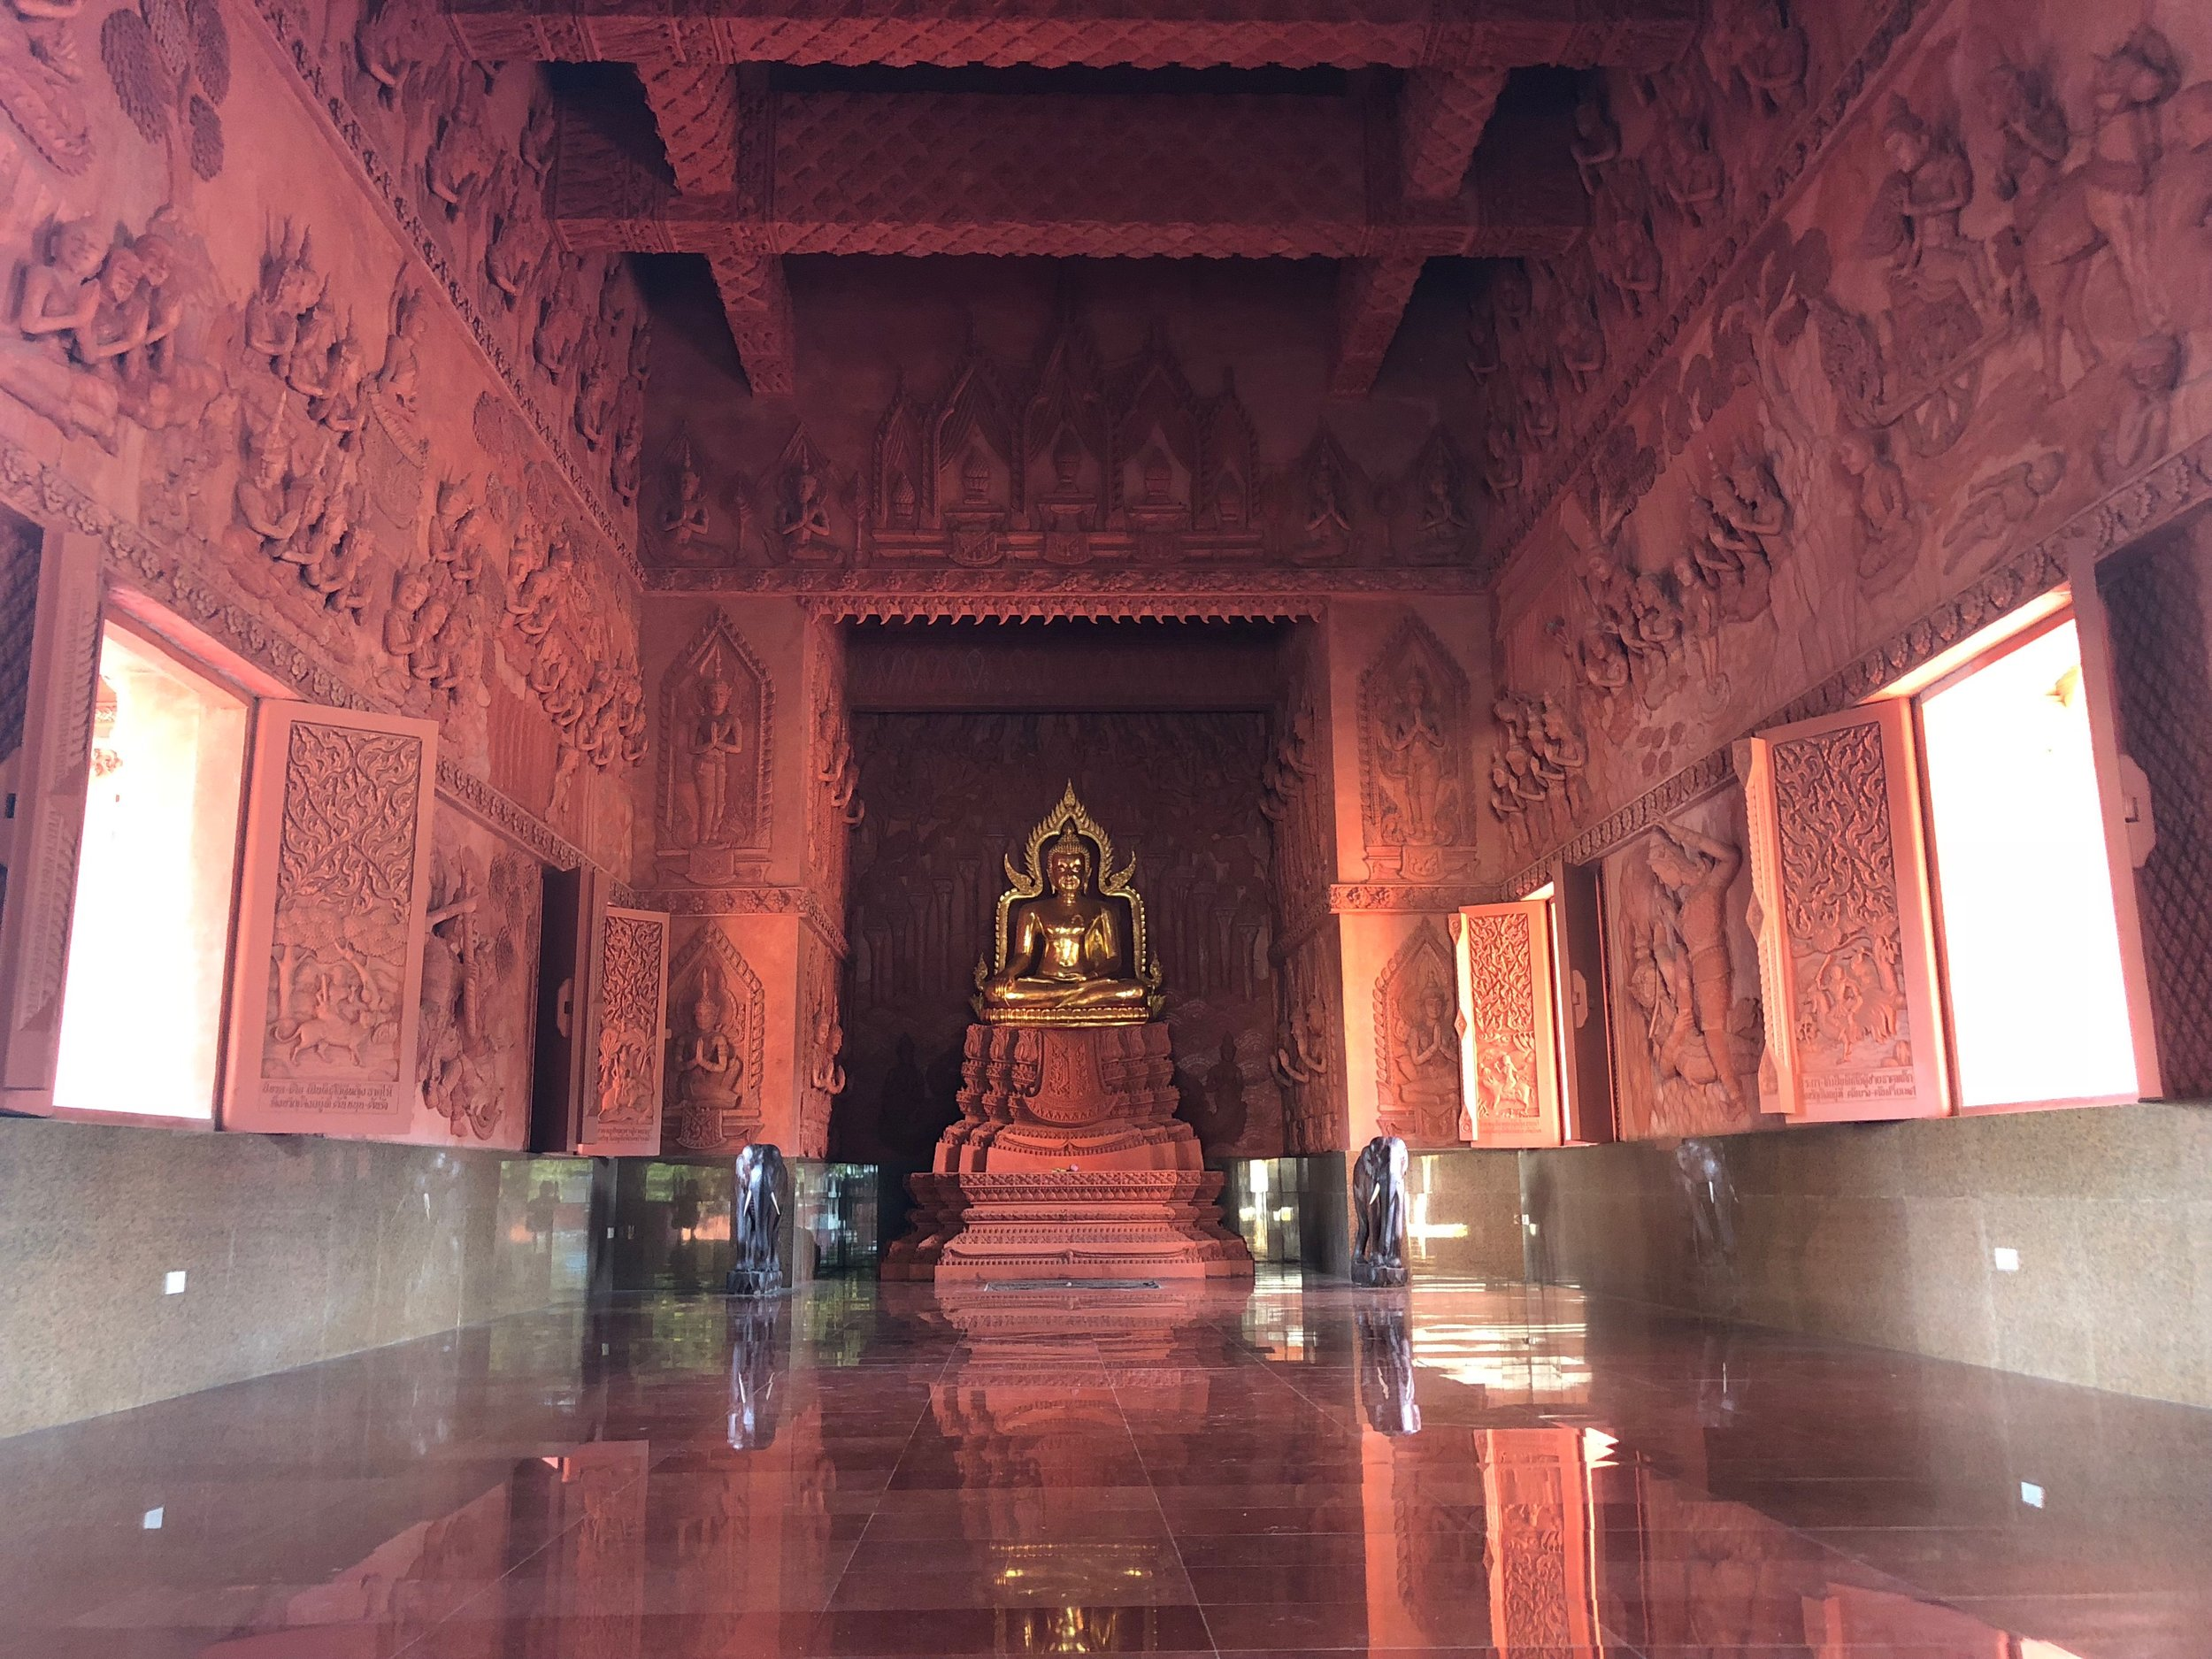 So many beautiful temples everywhere.....